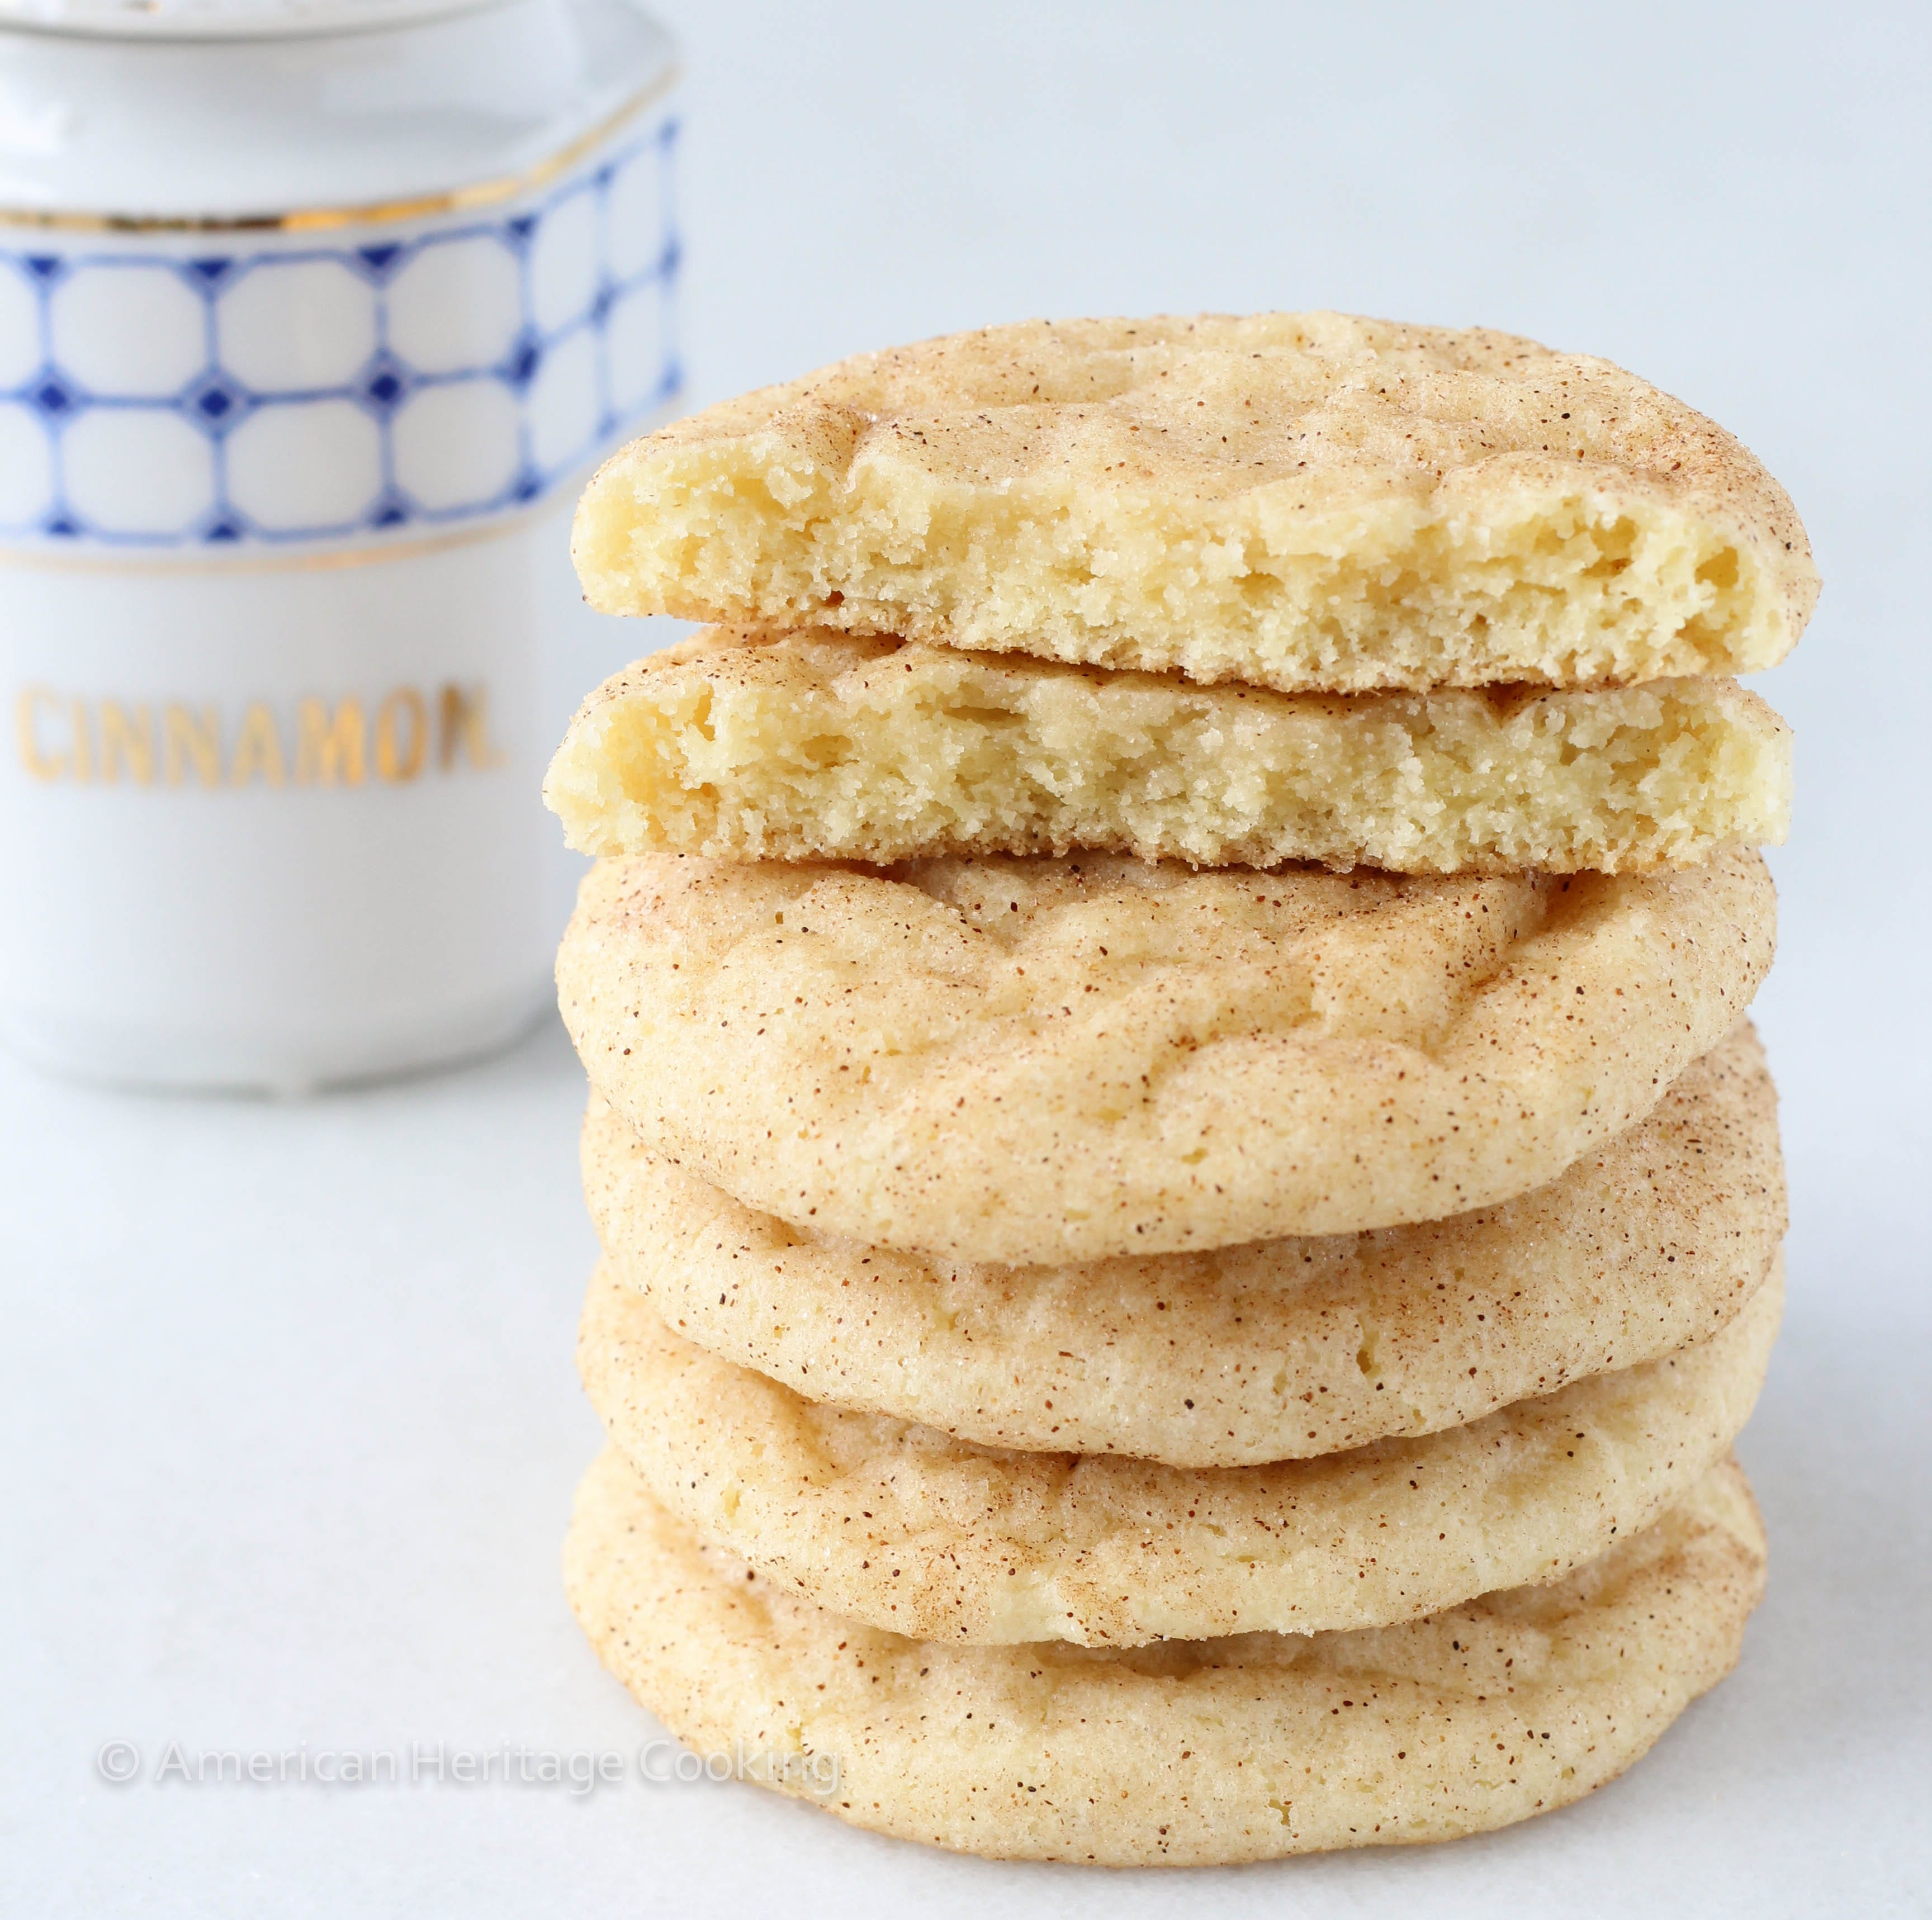 Snickerdoodles American Heritage Cooking - Better homes and gardens stand mixer